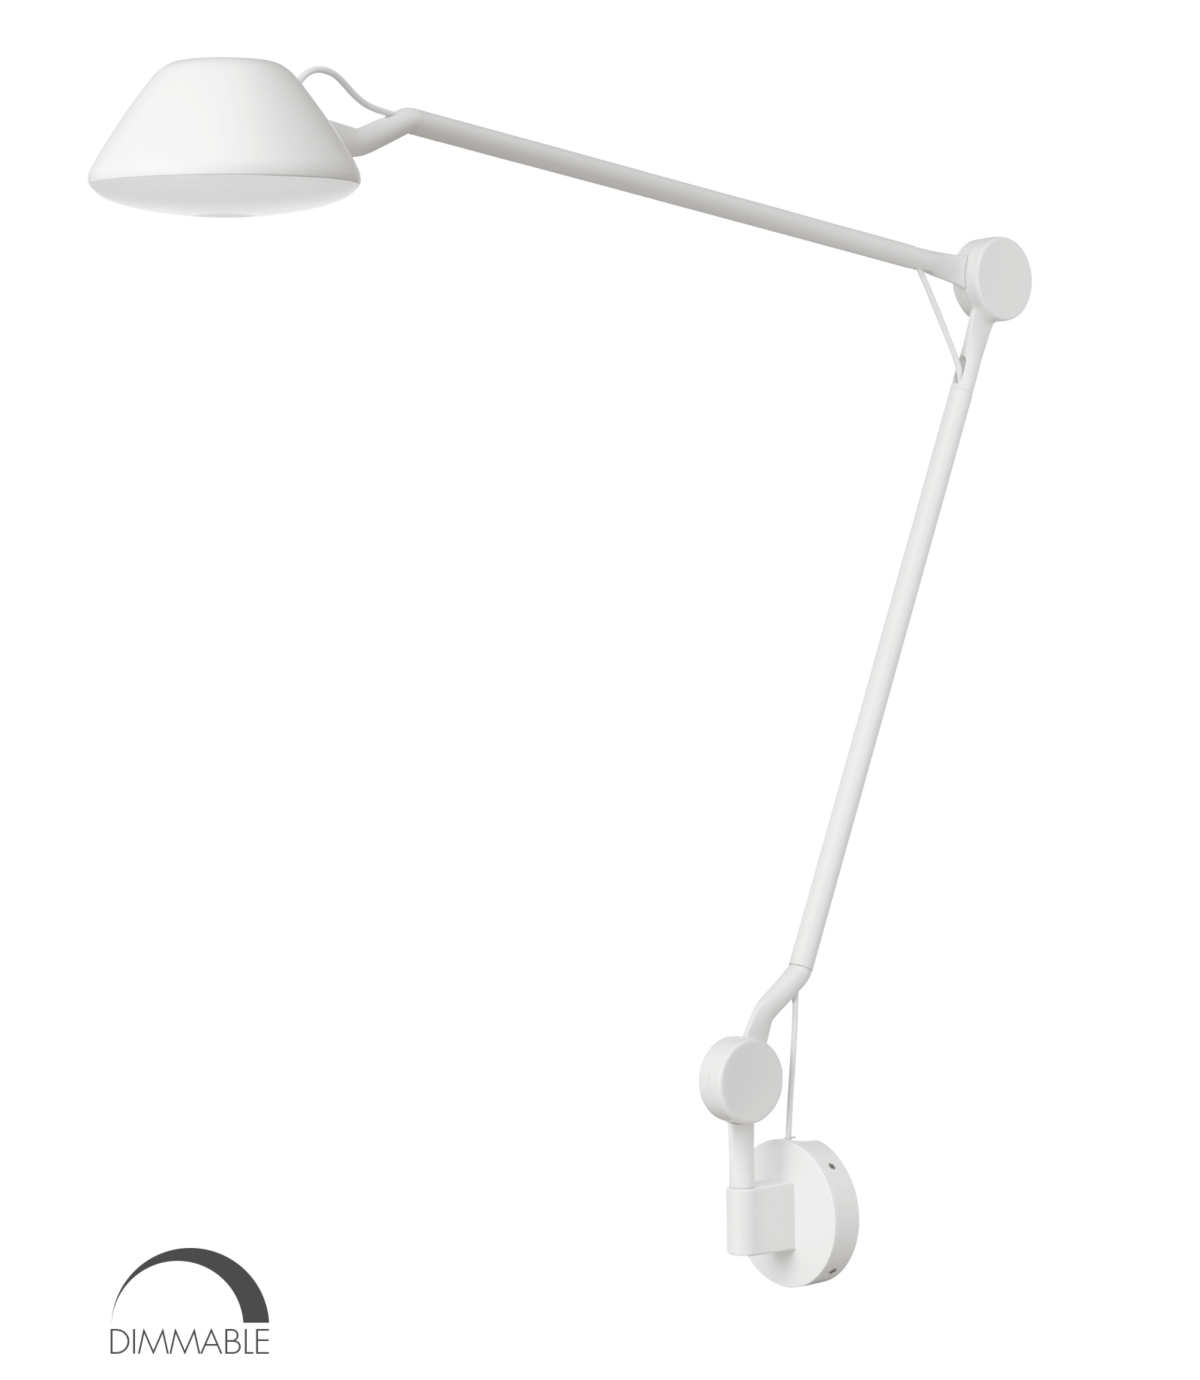 AQ01 wall lamp white png